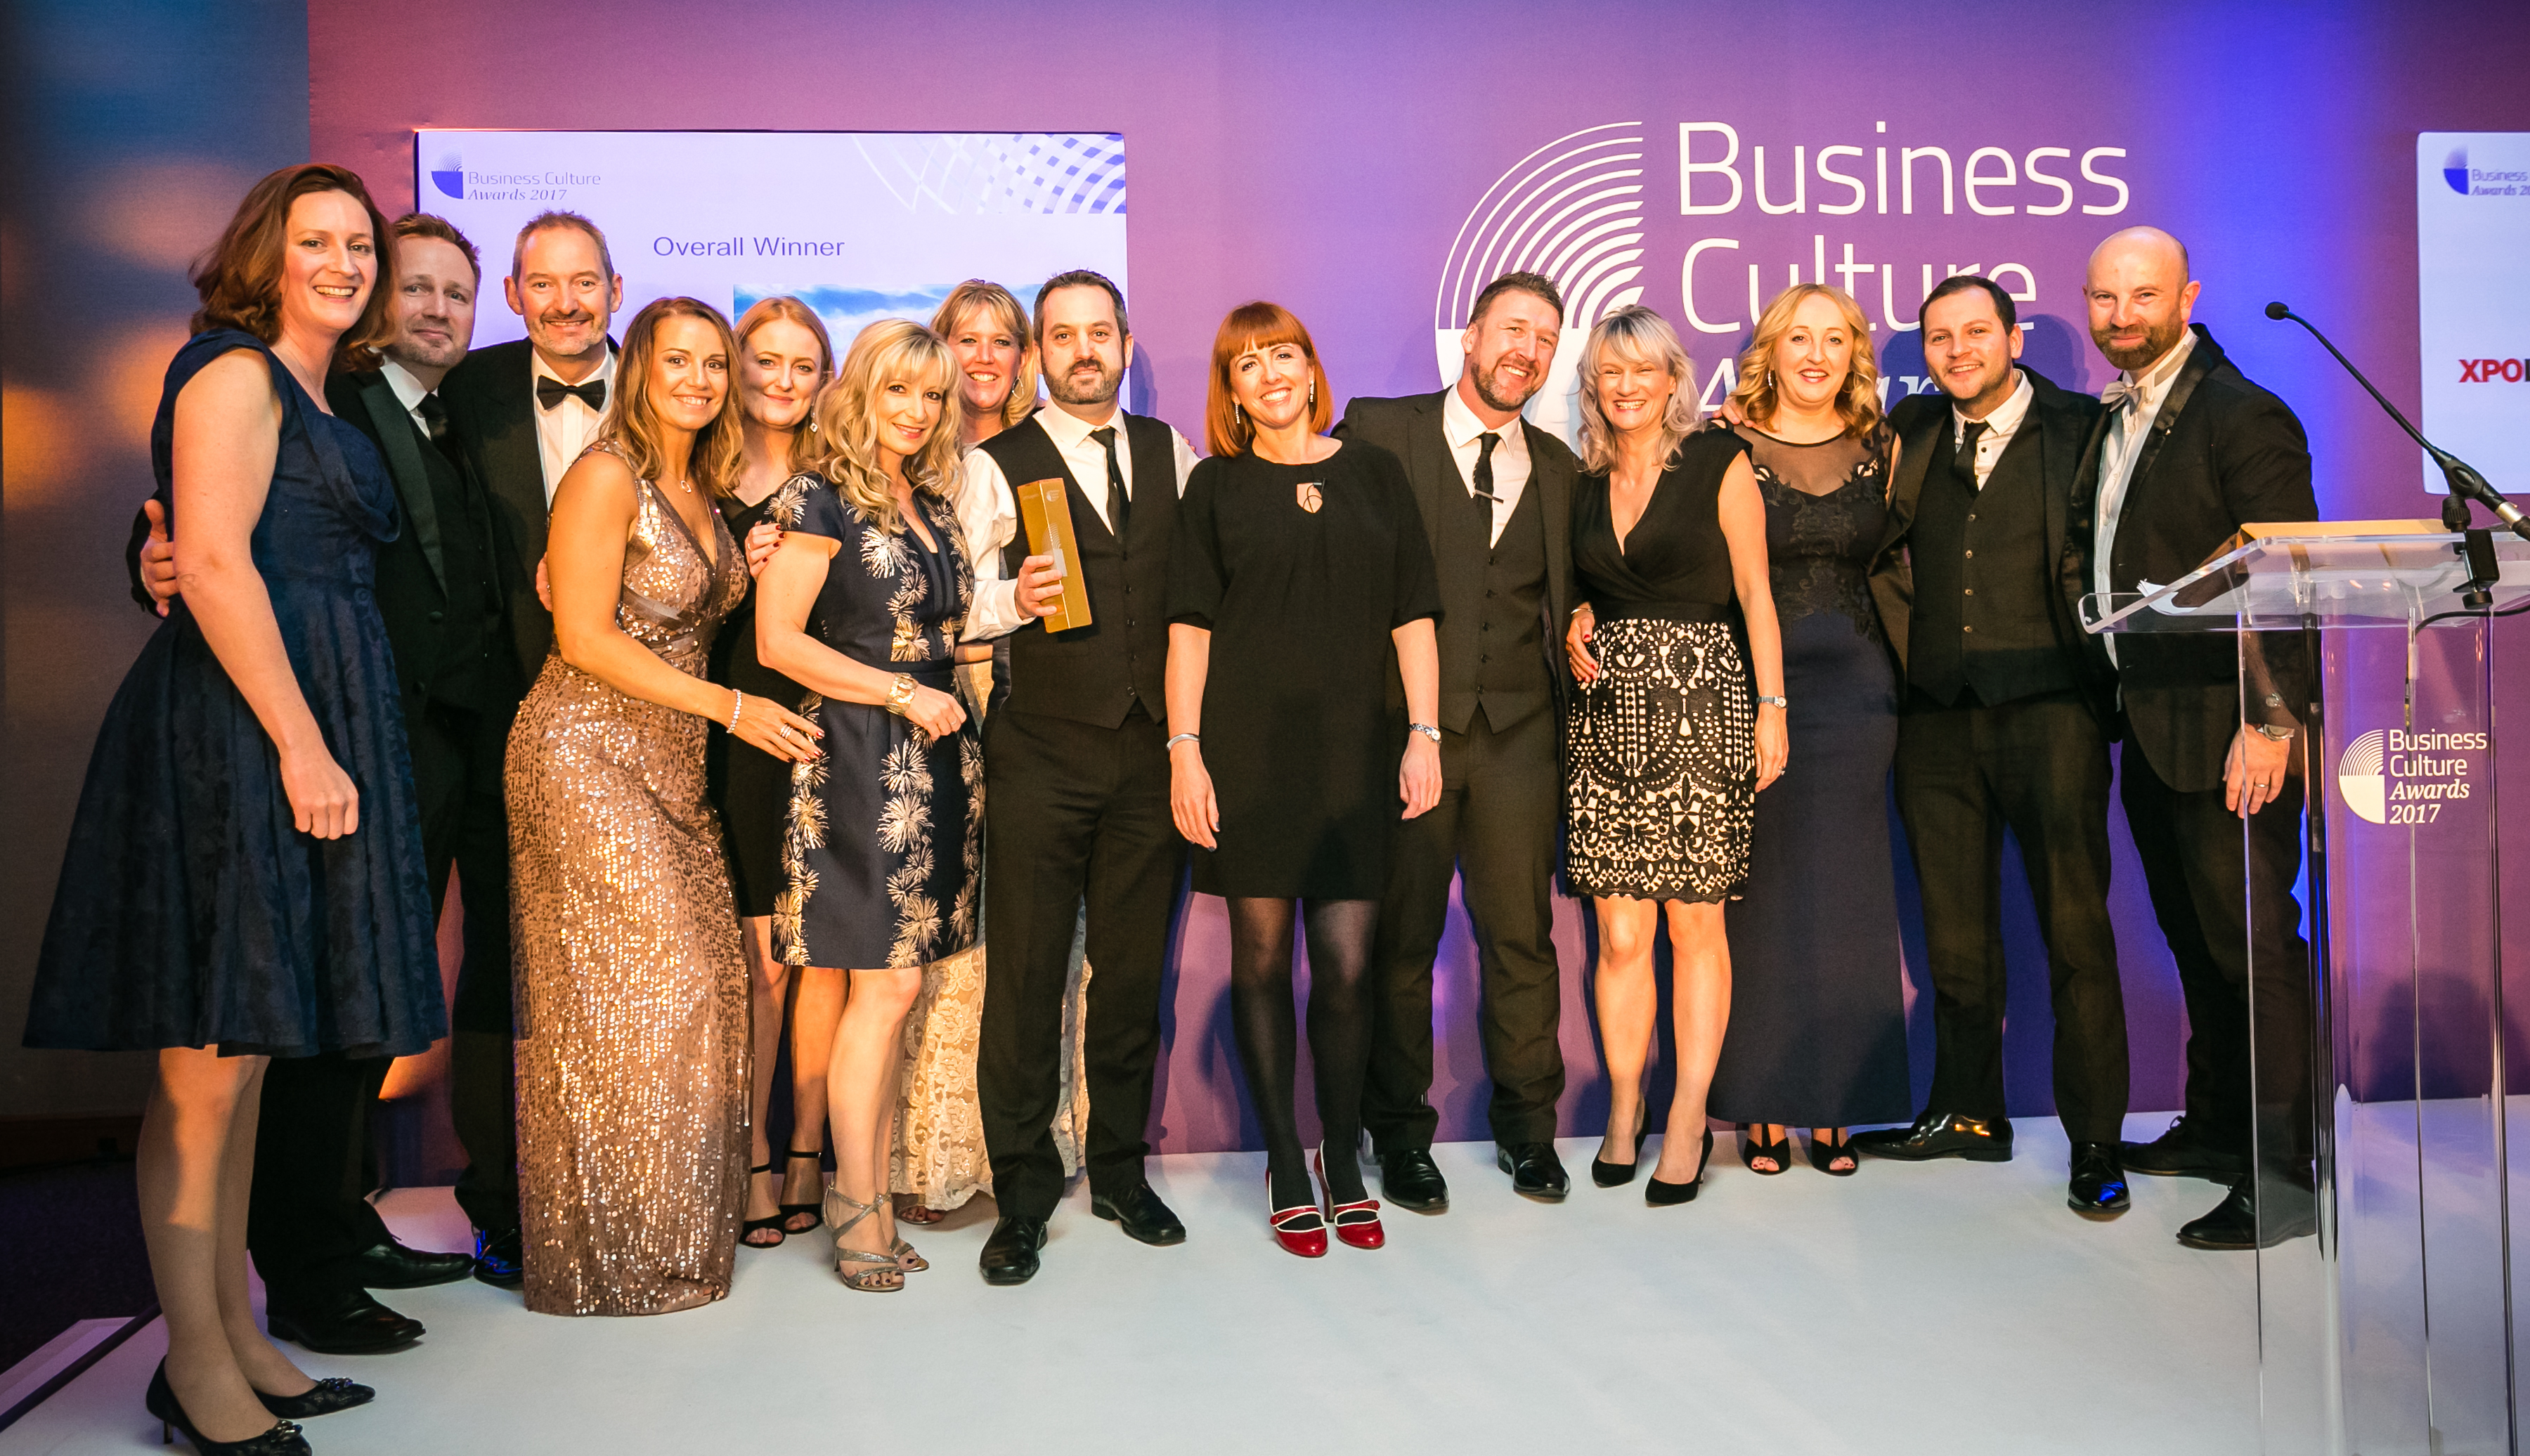 XPO Logistics take Gold Business Culture Award